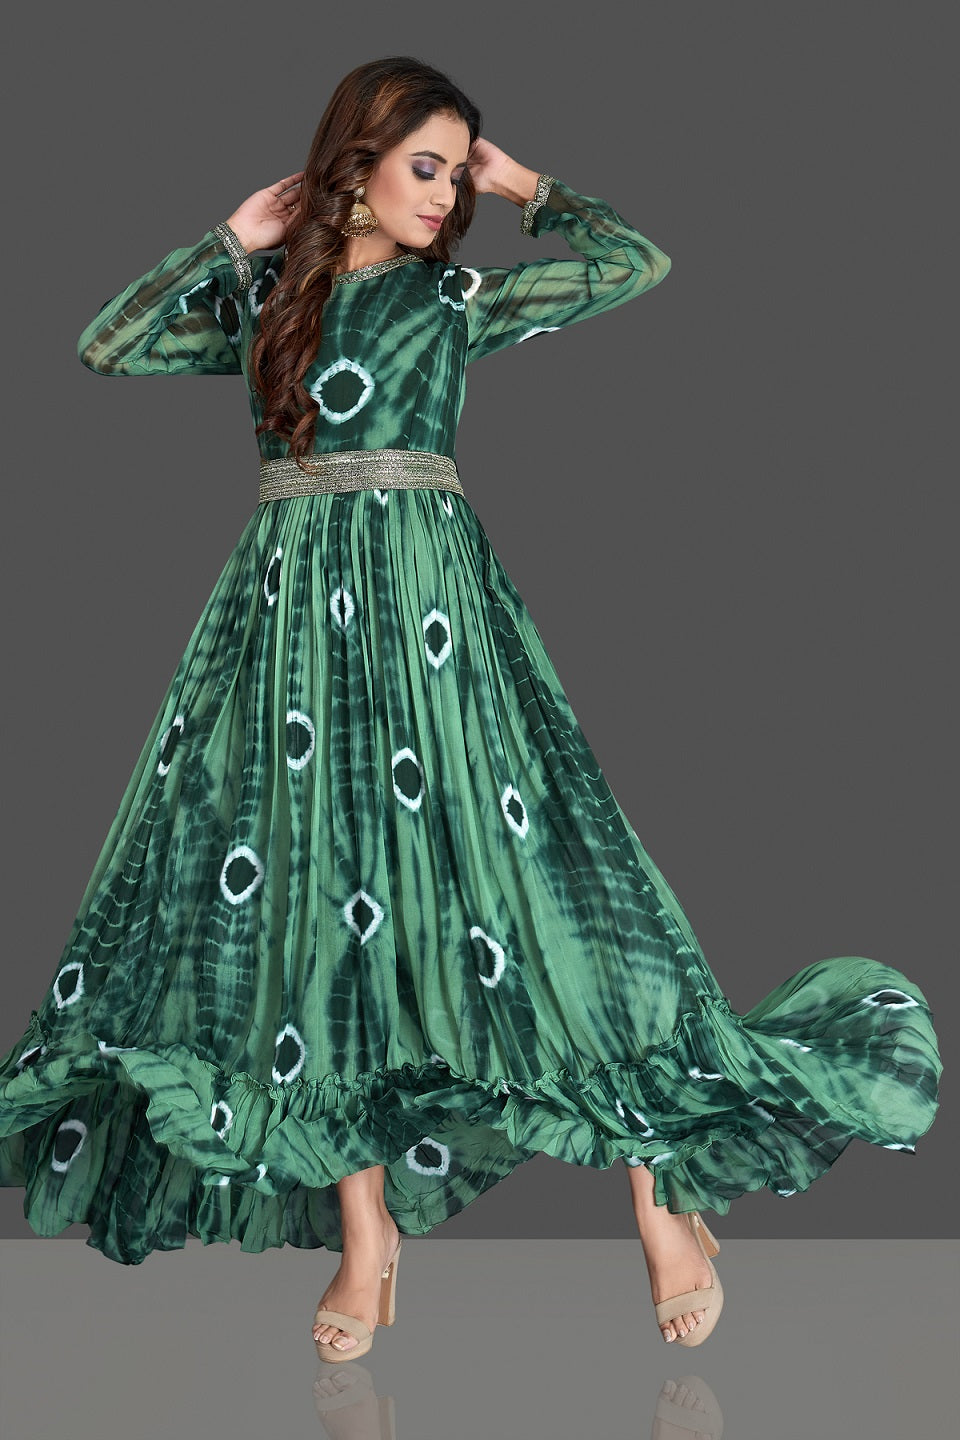 Buy stunning green bandhej georgette one piece dress online in USA. Elevate your Indian style with beautiful designer dresses, Indowestern outfits, designer salwar suits from Pure Elegance Indian fashion store in USA.-full view